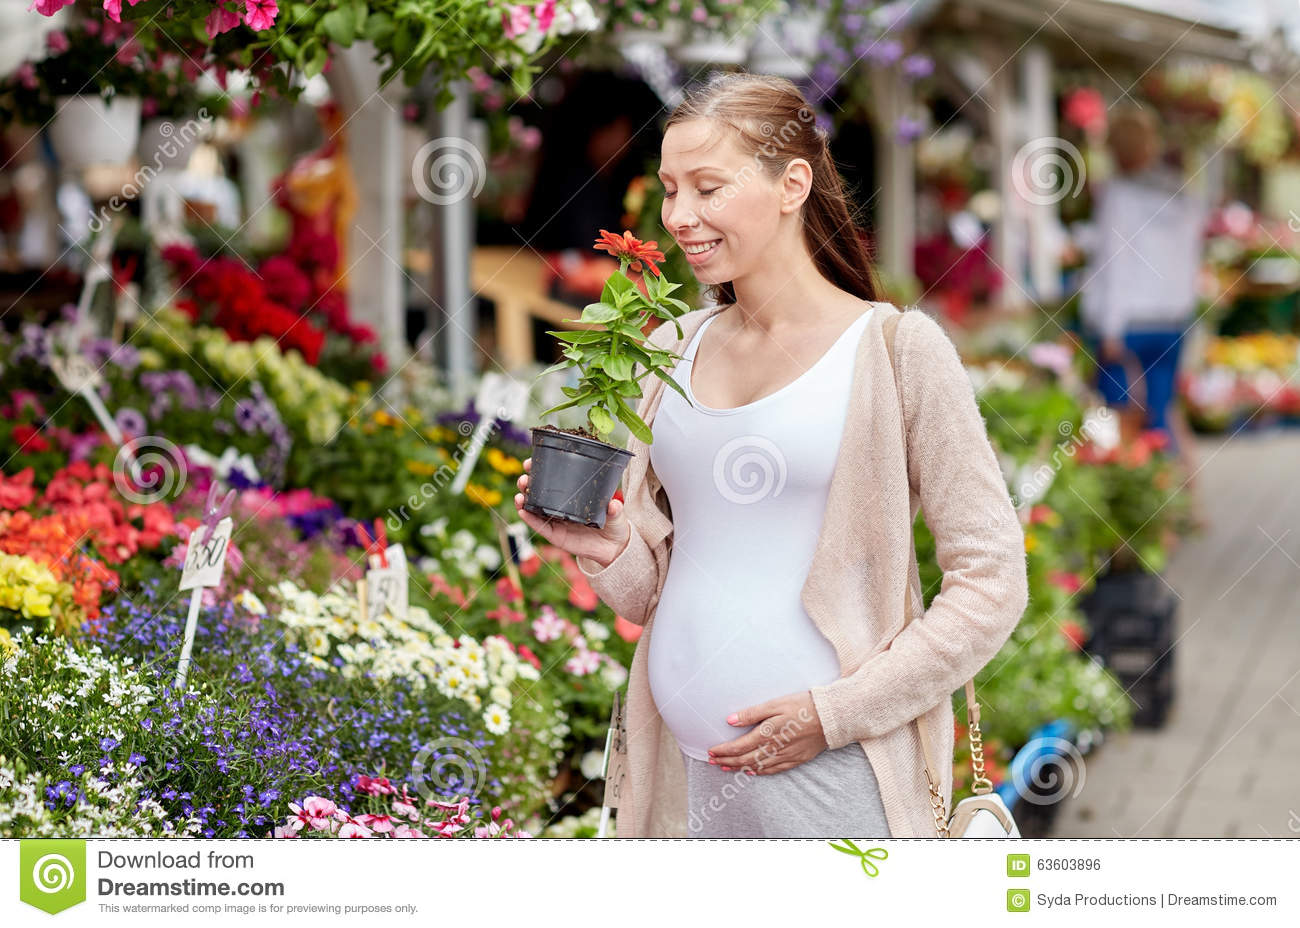 Pregnant woman choosing flowers at street market stock for Gardening while pregnant